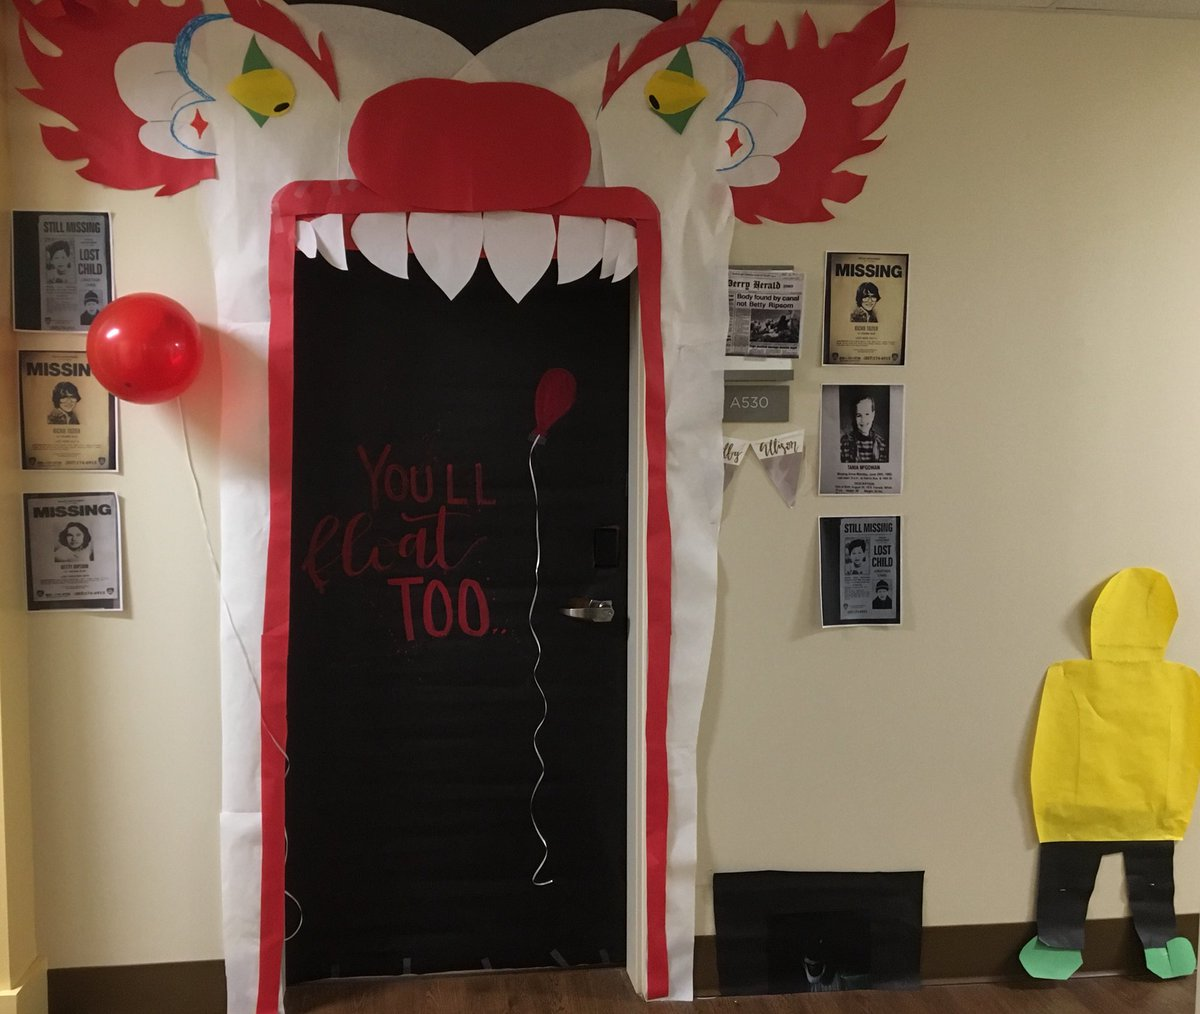 Rachael Flores On Twitter When You Initiate A Halloween Door Decorating Contest I M Prepared To Be Scared Every Night At Curfew Lura17